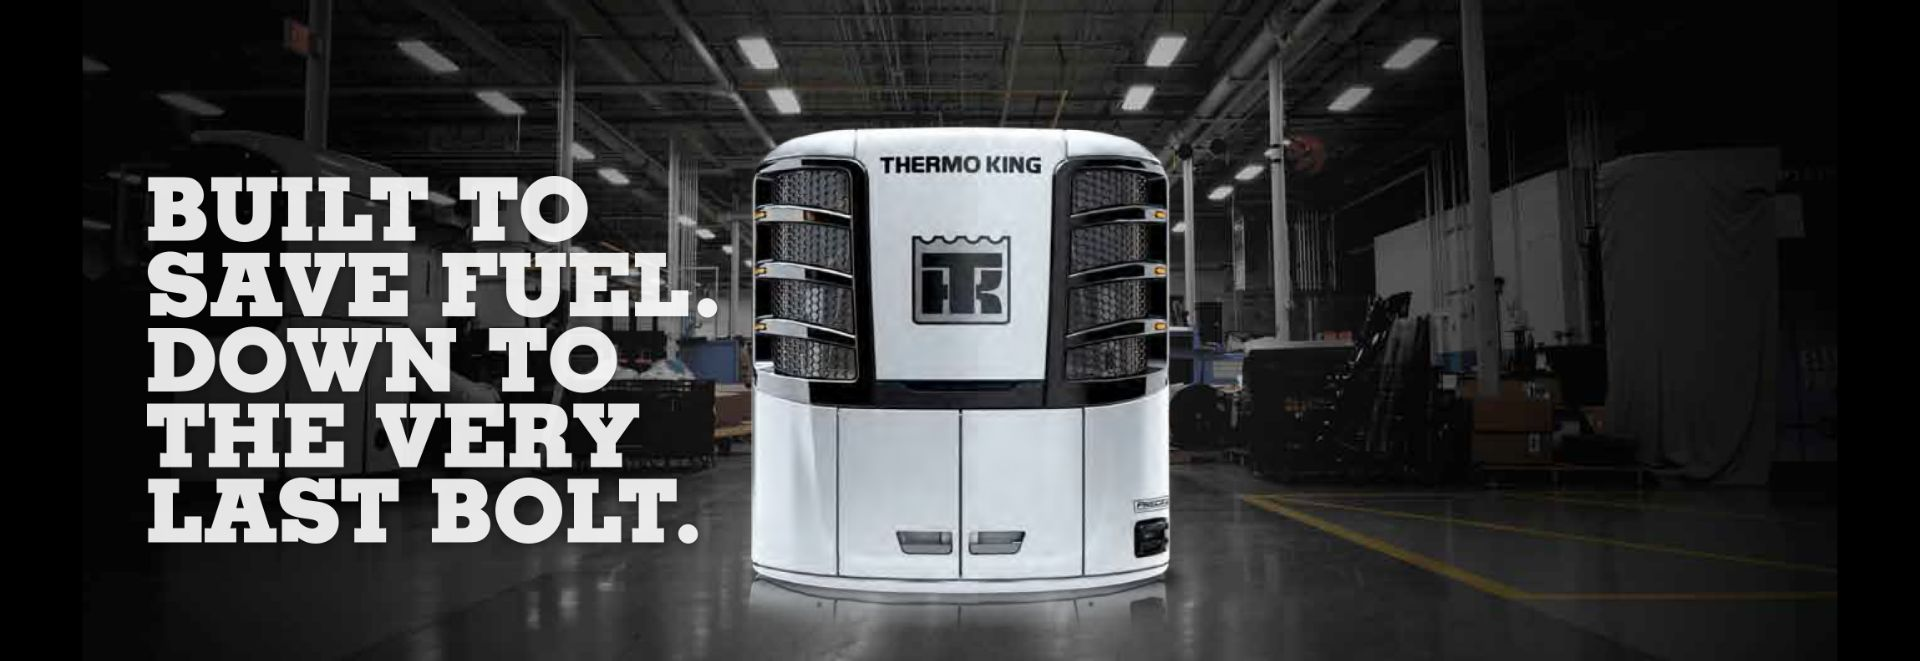 Home Thermo King of Orlando - West Winter Garden, FL (407) 293-7158